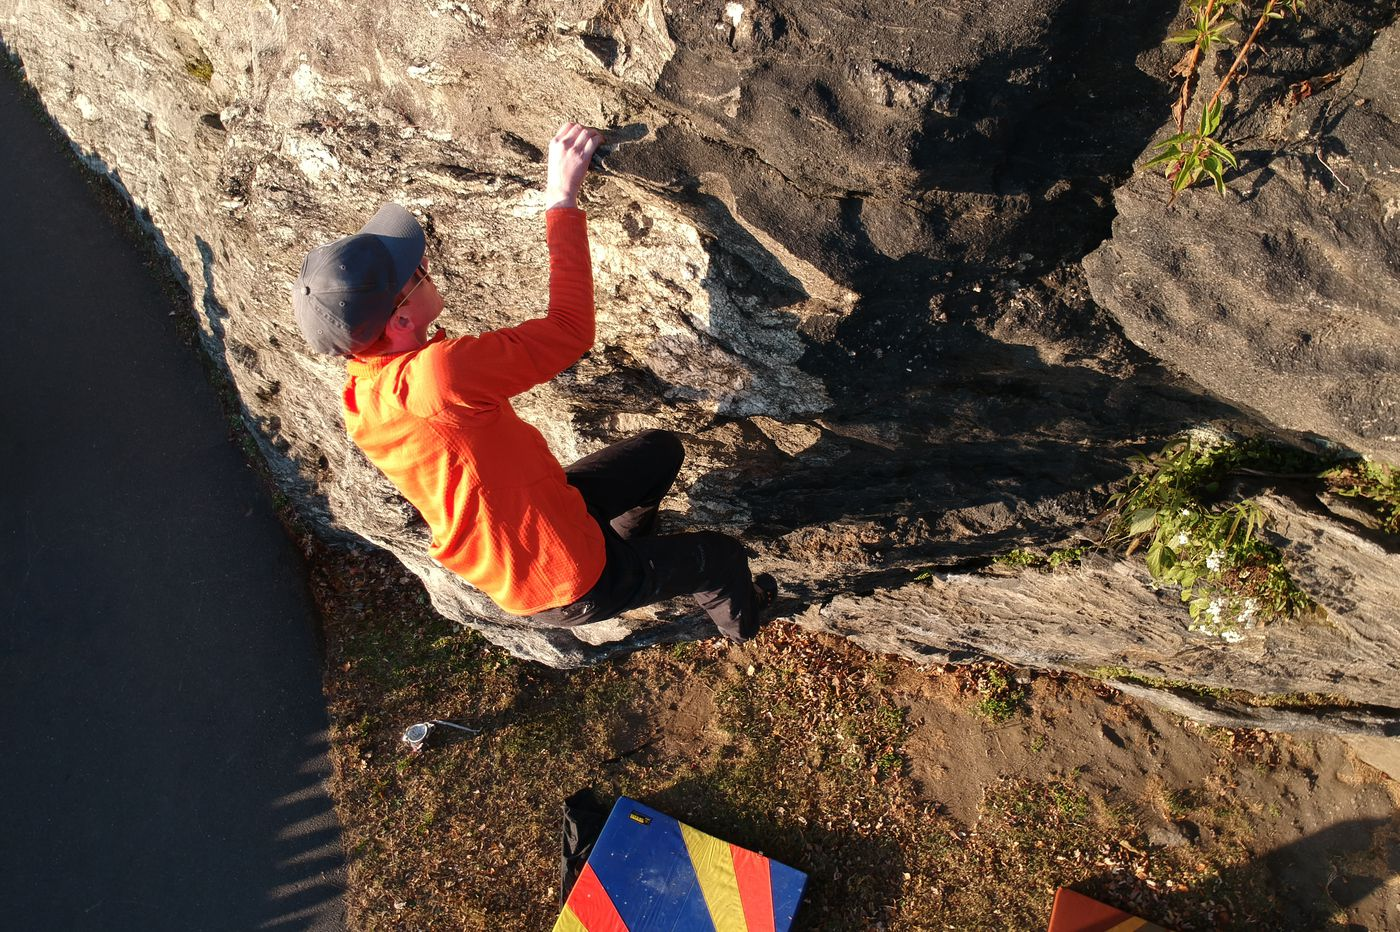 Video: Rock climbing in the Wissahickon